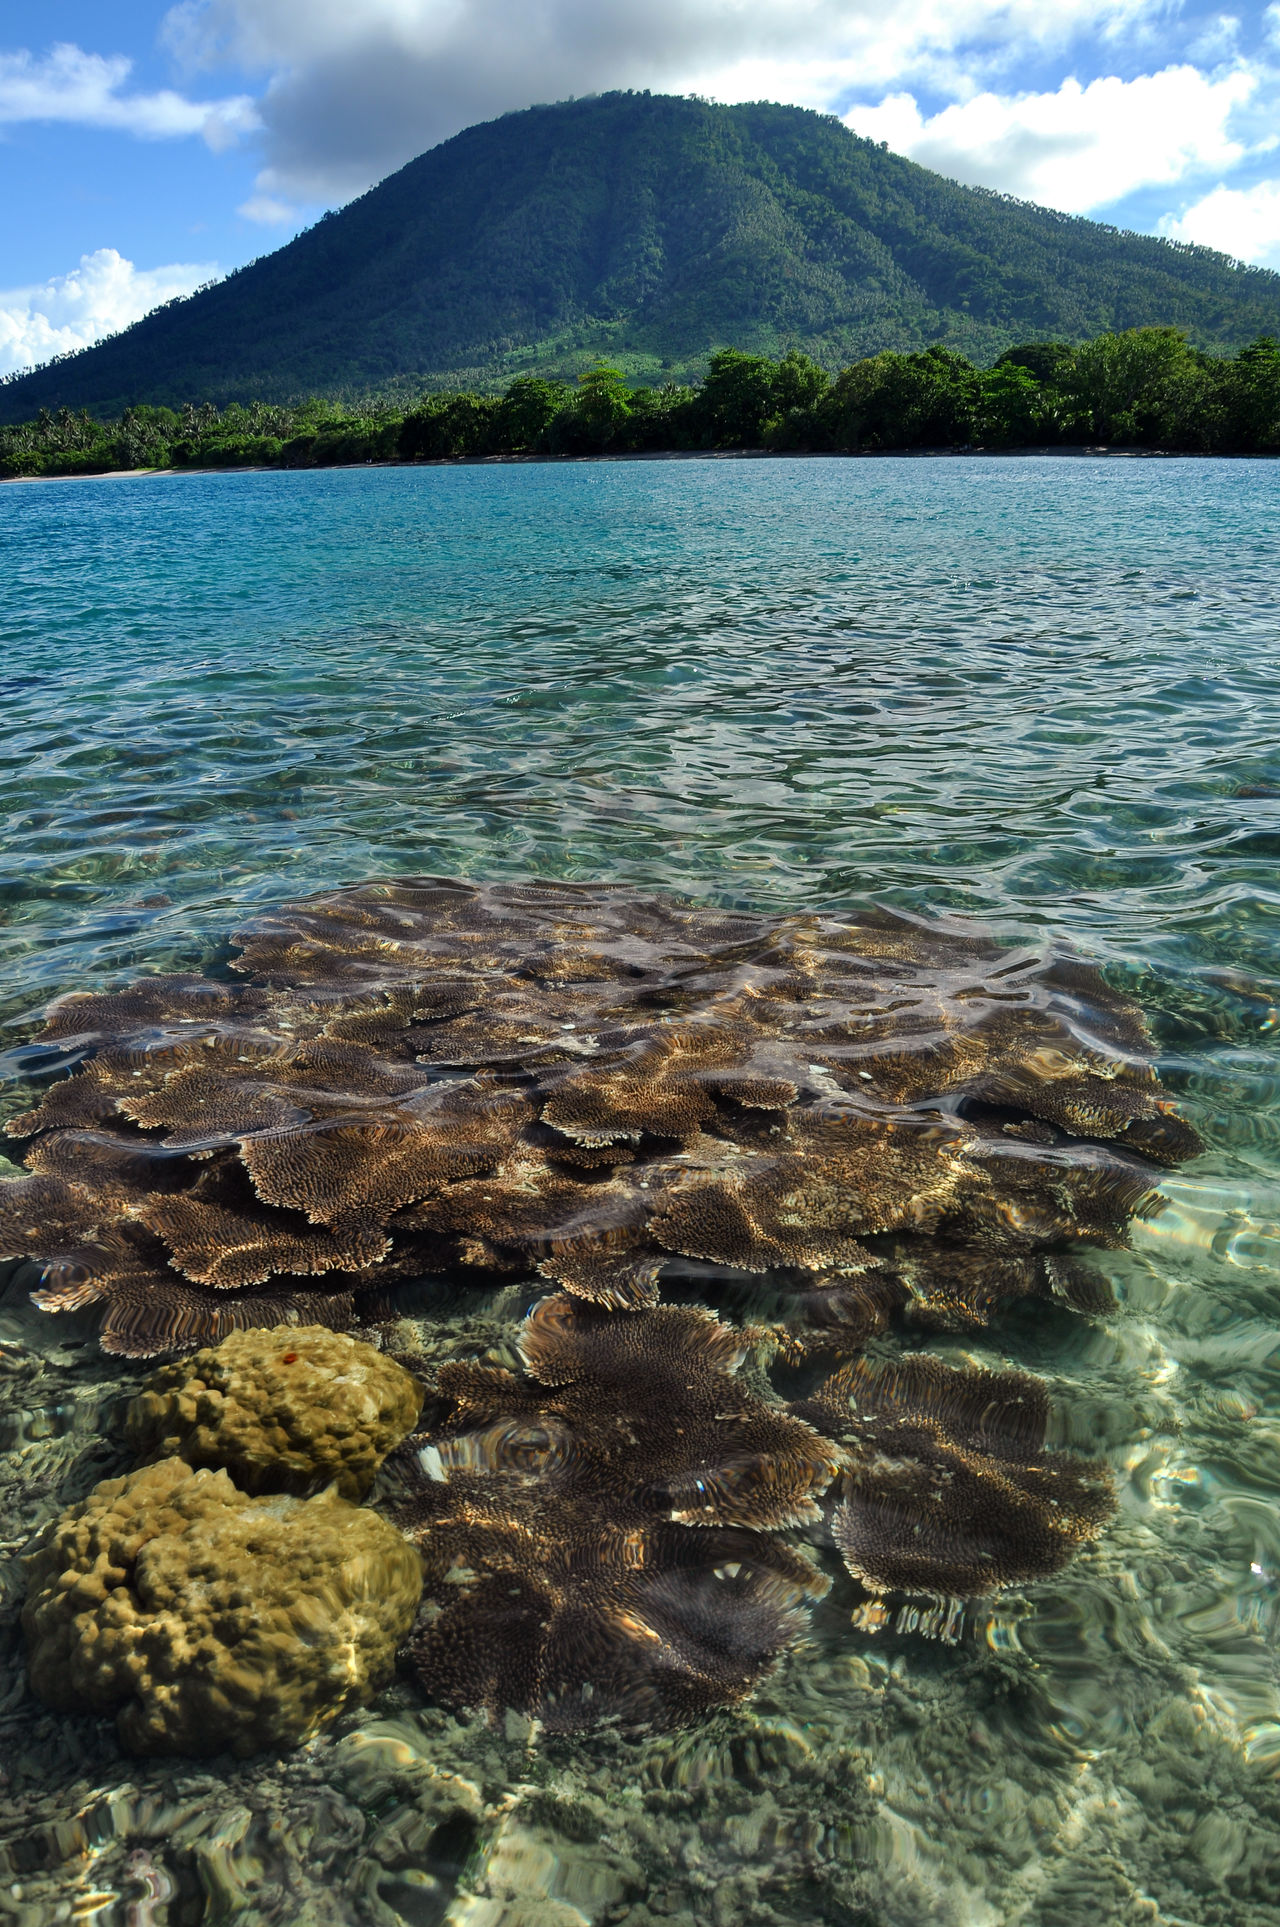 sea coral reefs Beach Beauty In Nature Coral Coral Reef Day INDONESIA Mountain Nature No People Outdoors Scenics Sea Sky Tranquil Scene Tranquility Travel Destinations Tree Water Wilderness